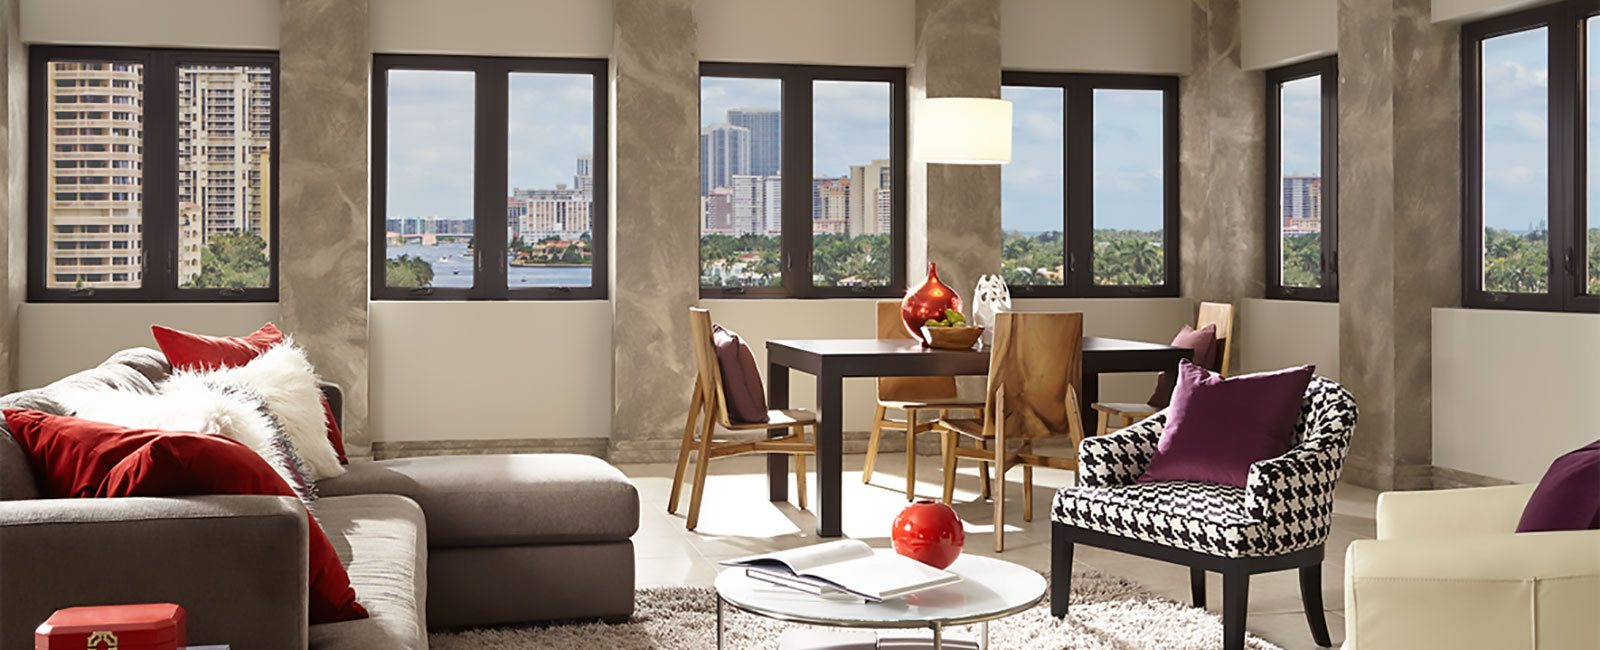 Impact Resistant Windows in a Modern Condominium